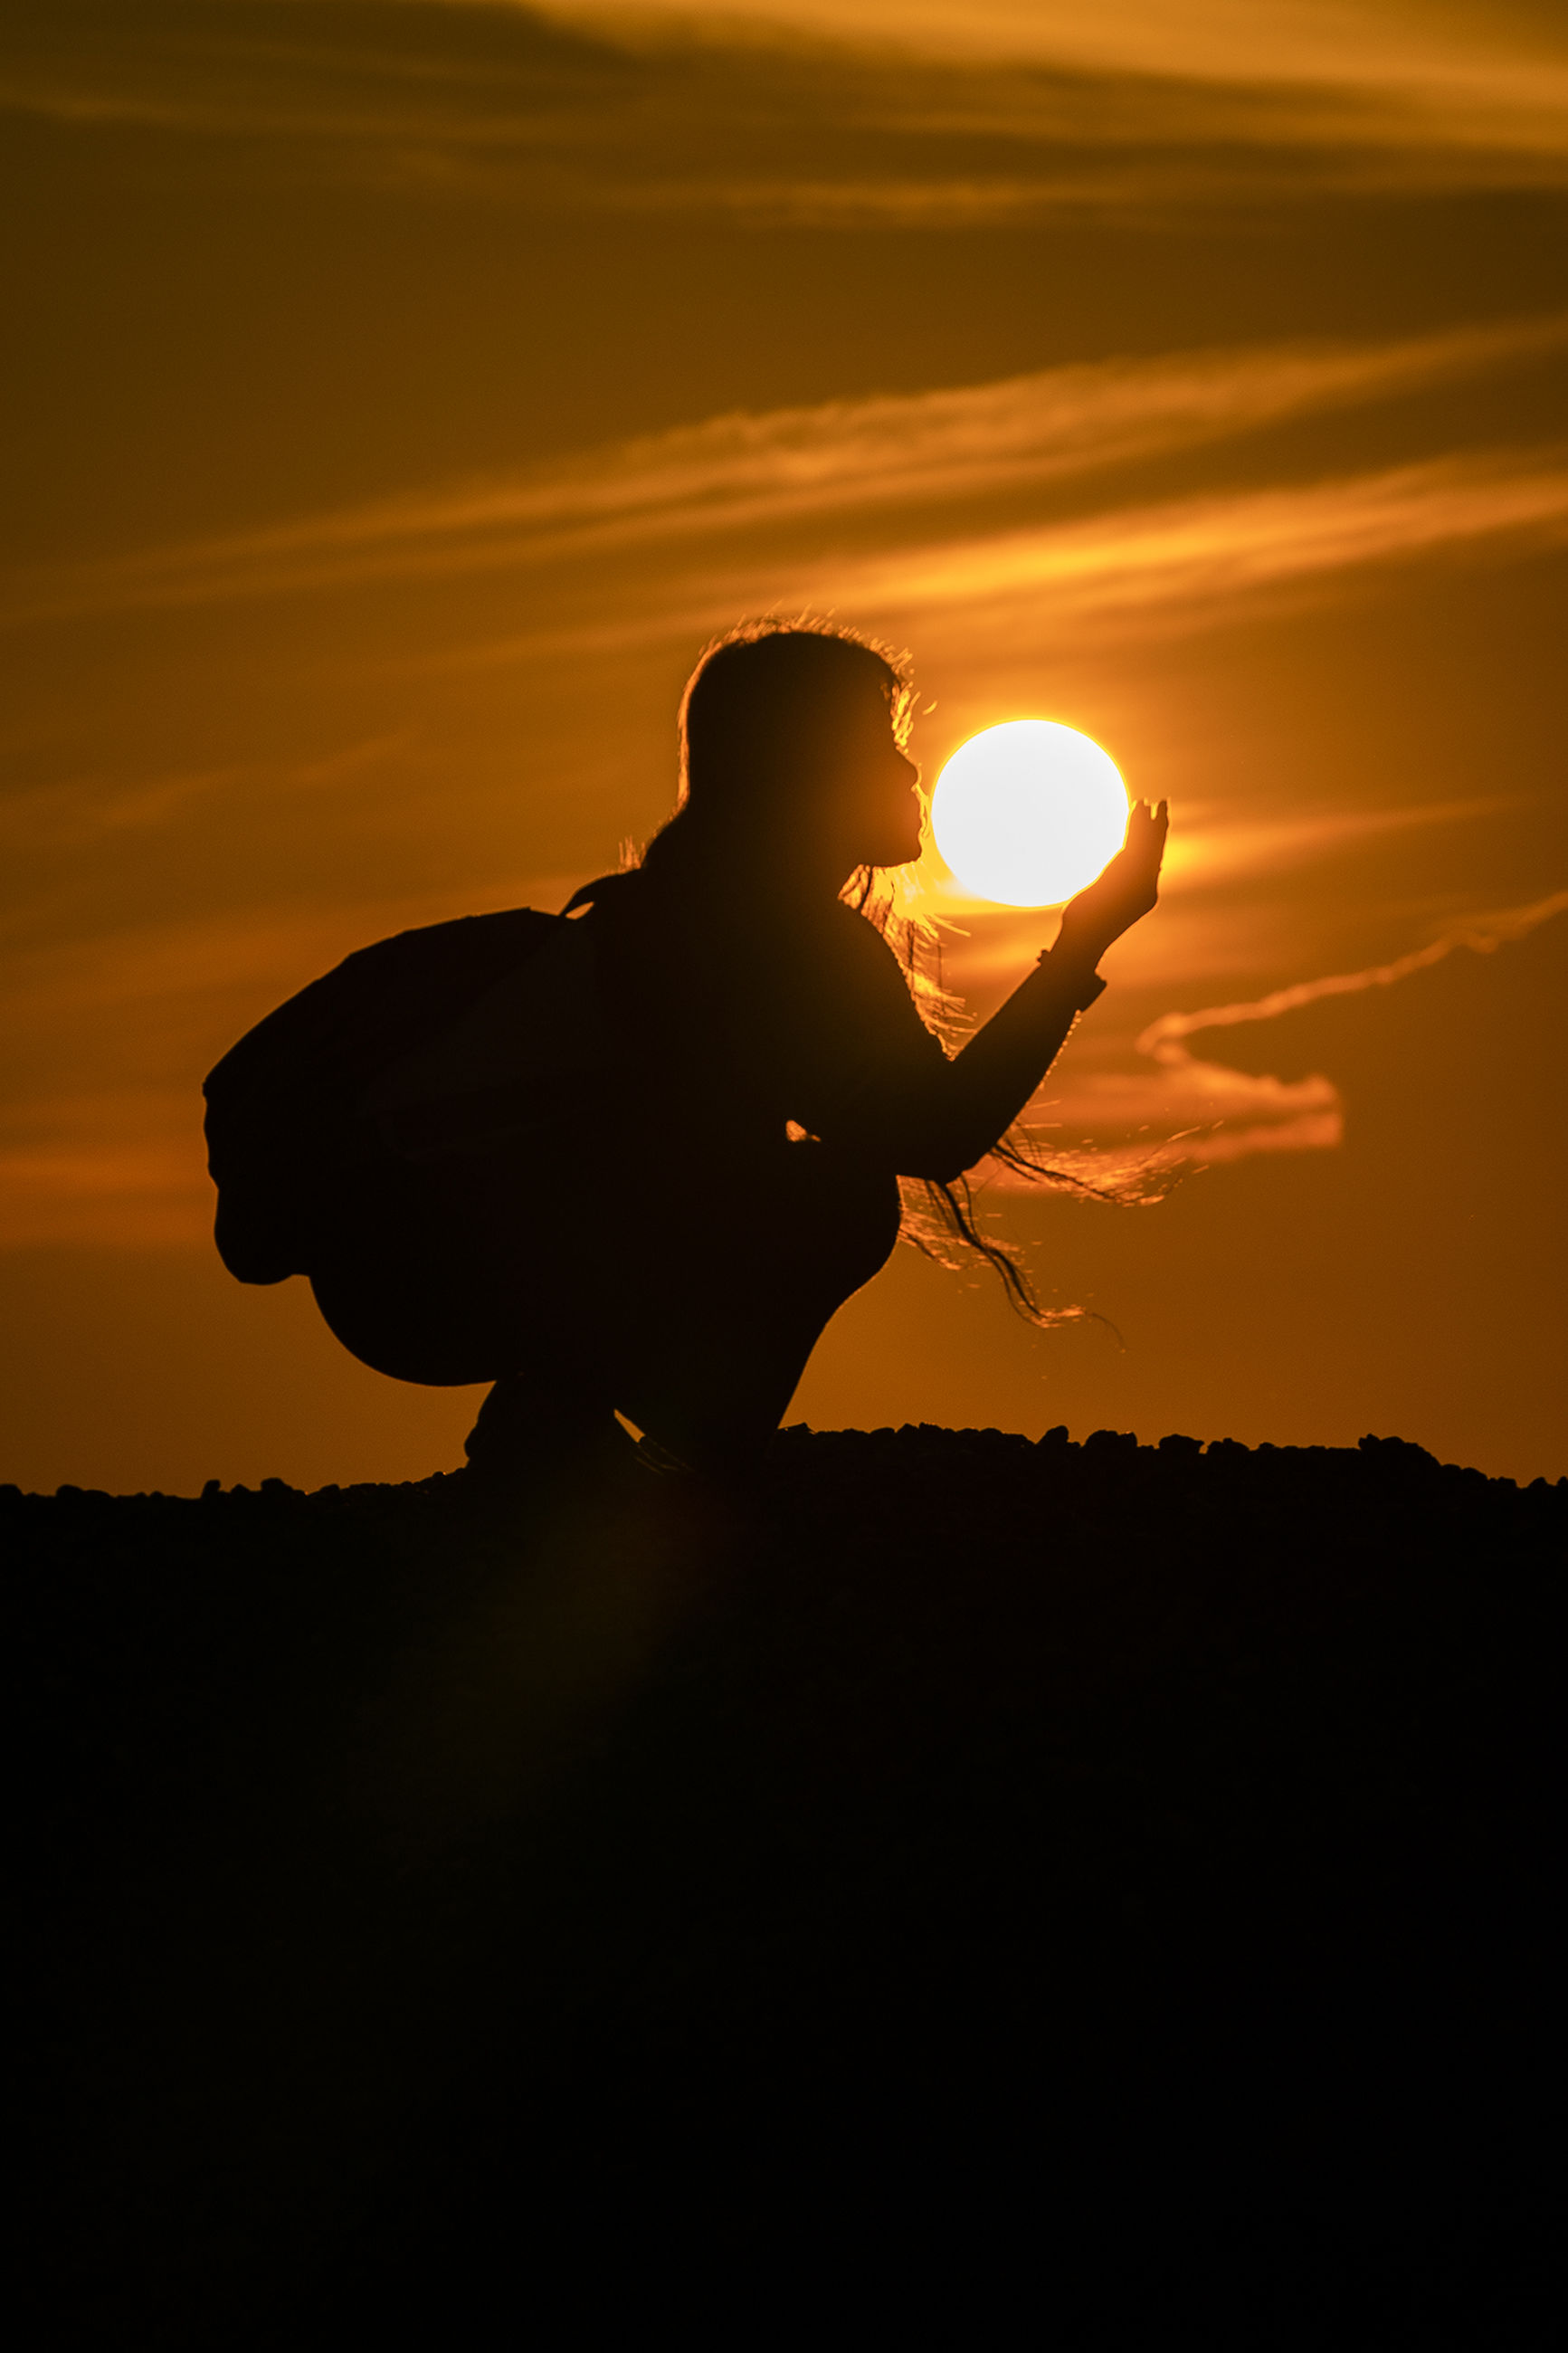 sunset, sky, orange color, silhouette, one person, beauty in nature, real people, lifestyles, men, sun, nature, scenics - nature, leisure activity, holding, cloud - sky, standing, tranquility, outdoors, land